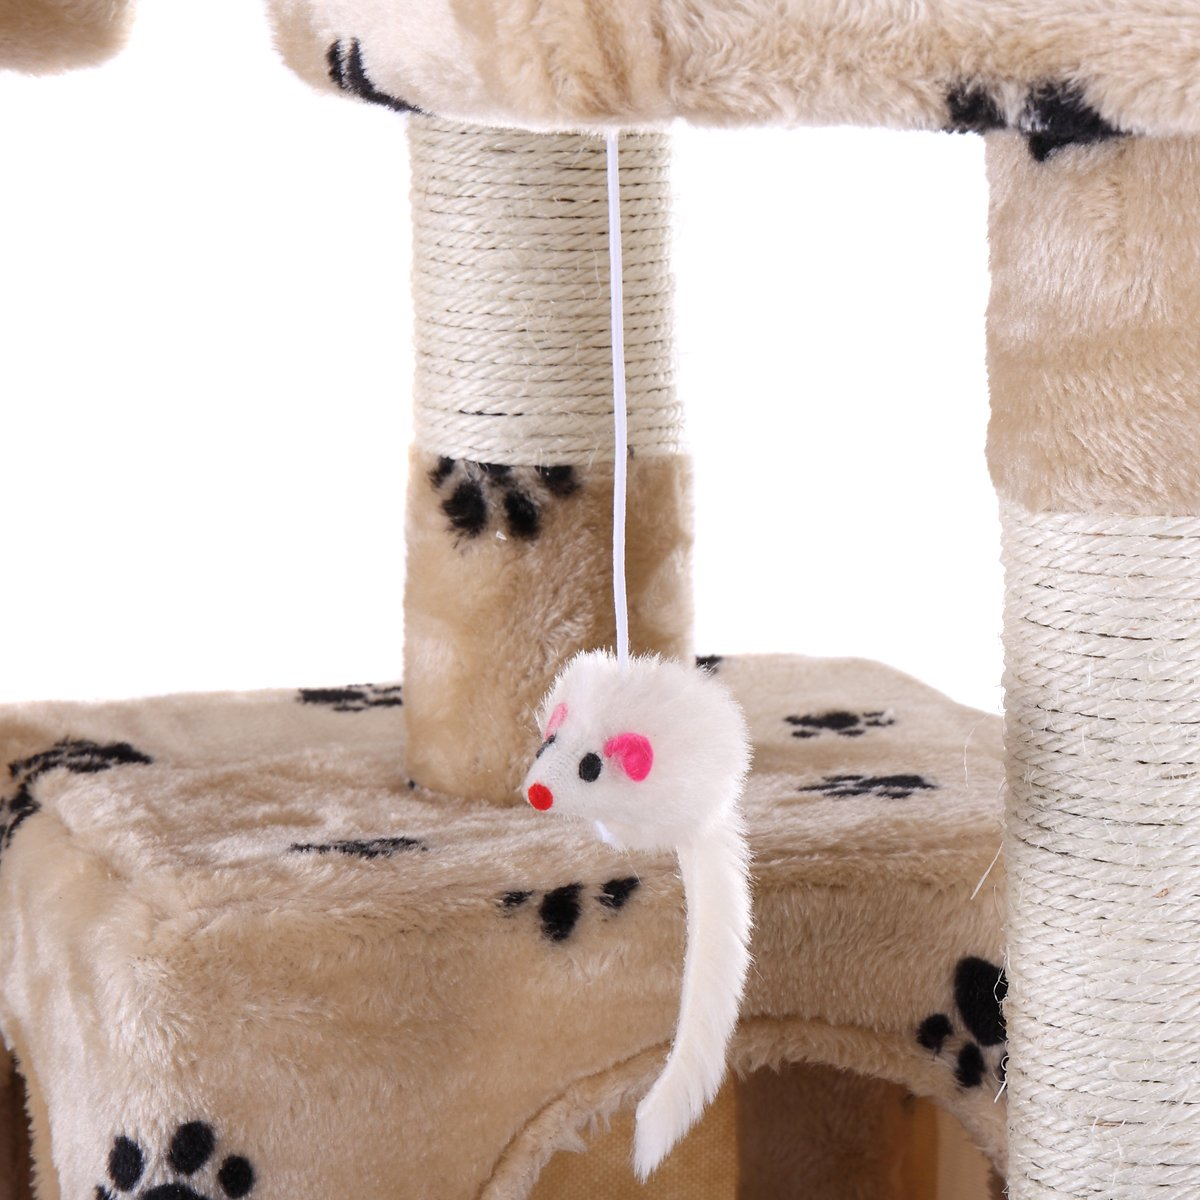 LAZYMOON 67'' Cat Tree 4-Tier Tower Condo Play House Furniture w/ Scratching posts and Toy Mouse Beige with Footprint by LAZYMOON (Image #9)